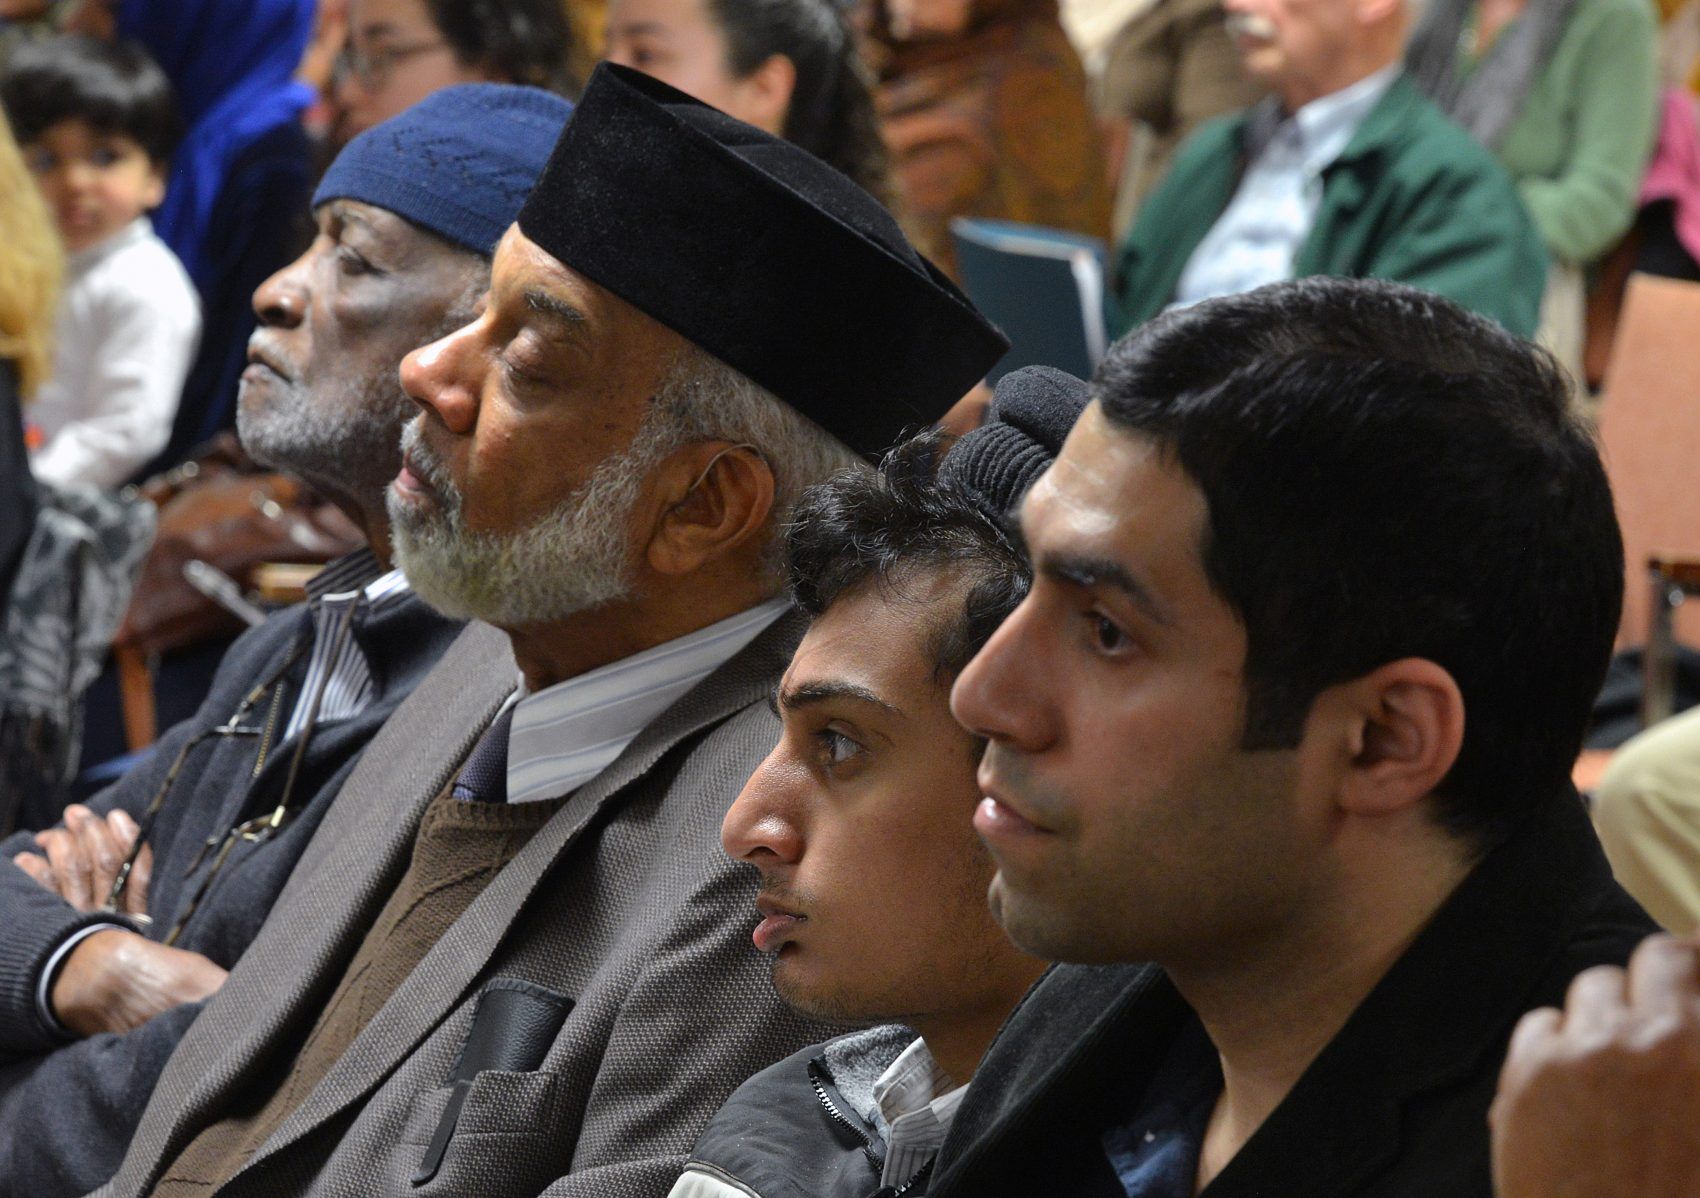 Members of the Ahmadiyya Muslim community listened as Ted Hakey apologized in the room that was marked by his bullets. (Peter Casolino/Special to the Hartford Courant)